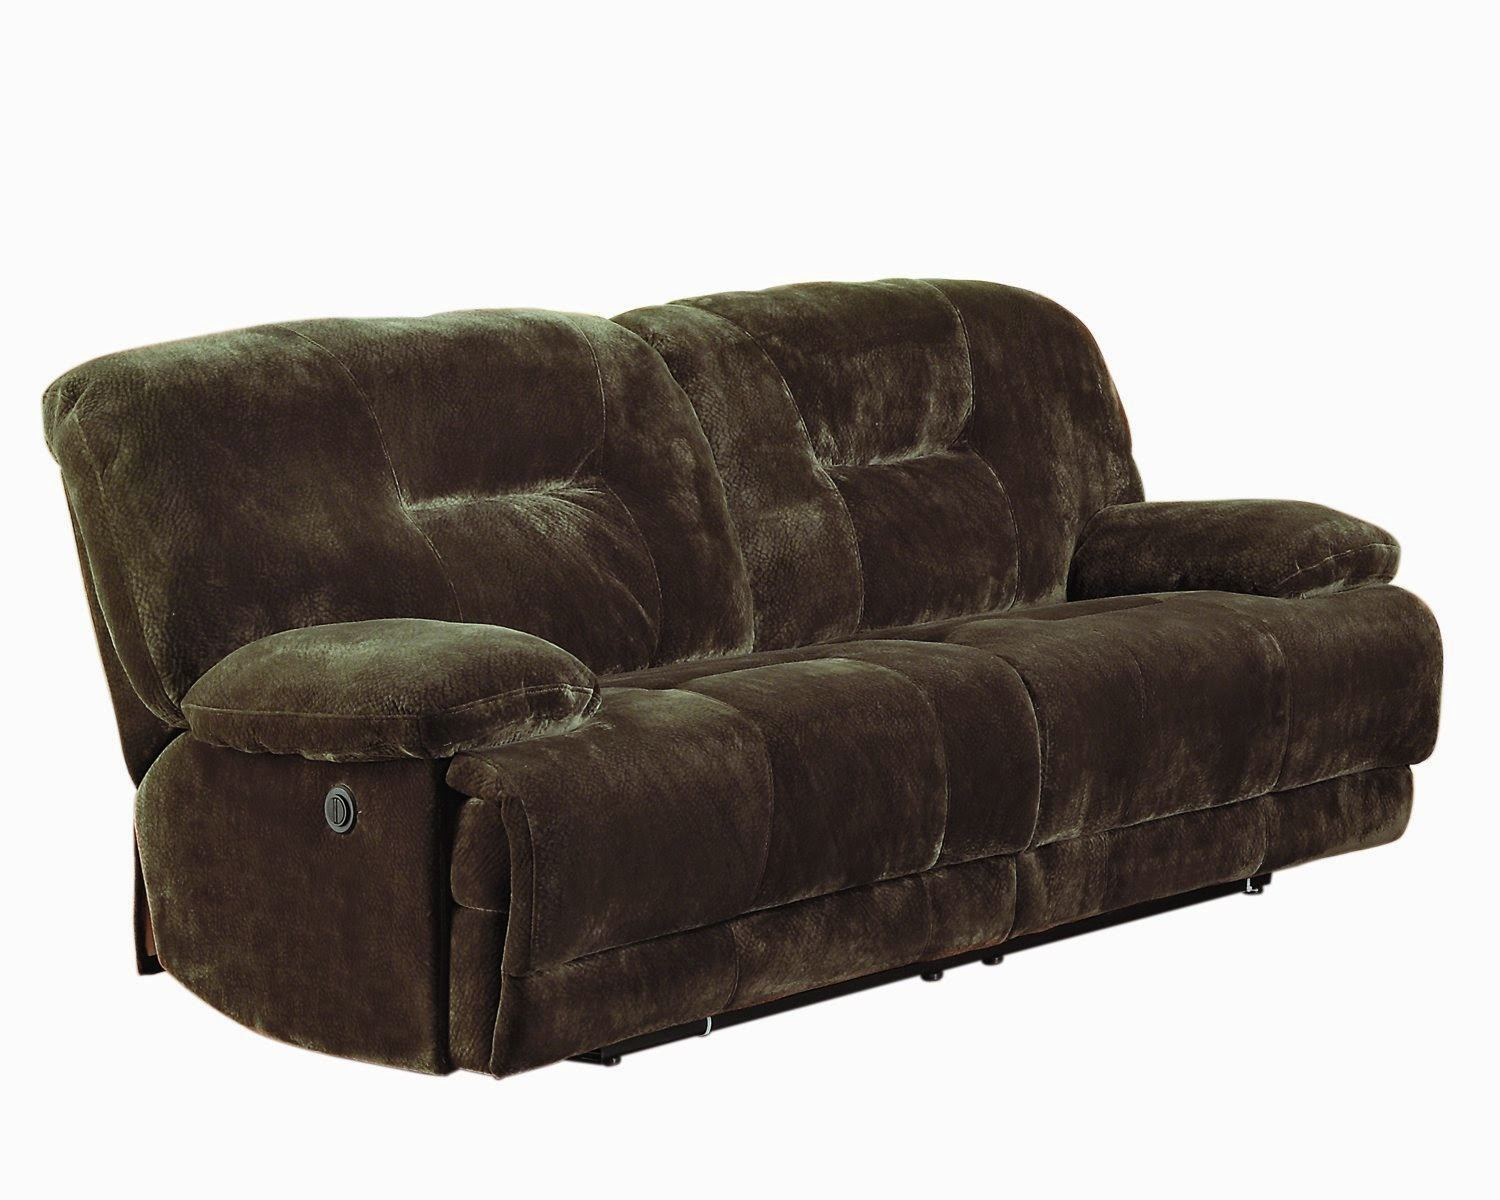 Sofa Recliner Sale: 2 Seater Recliner Sofa Fabric